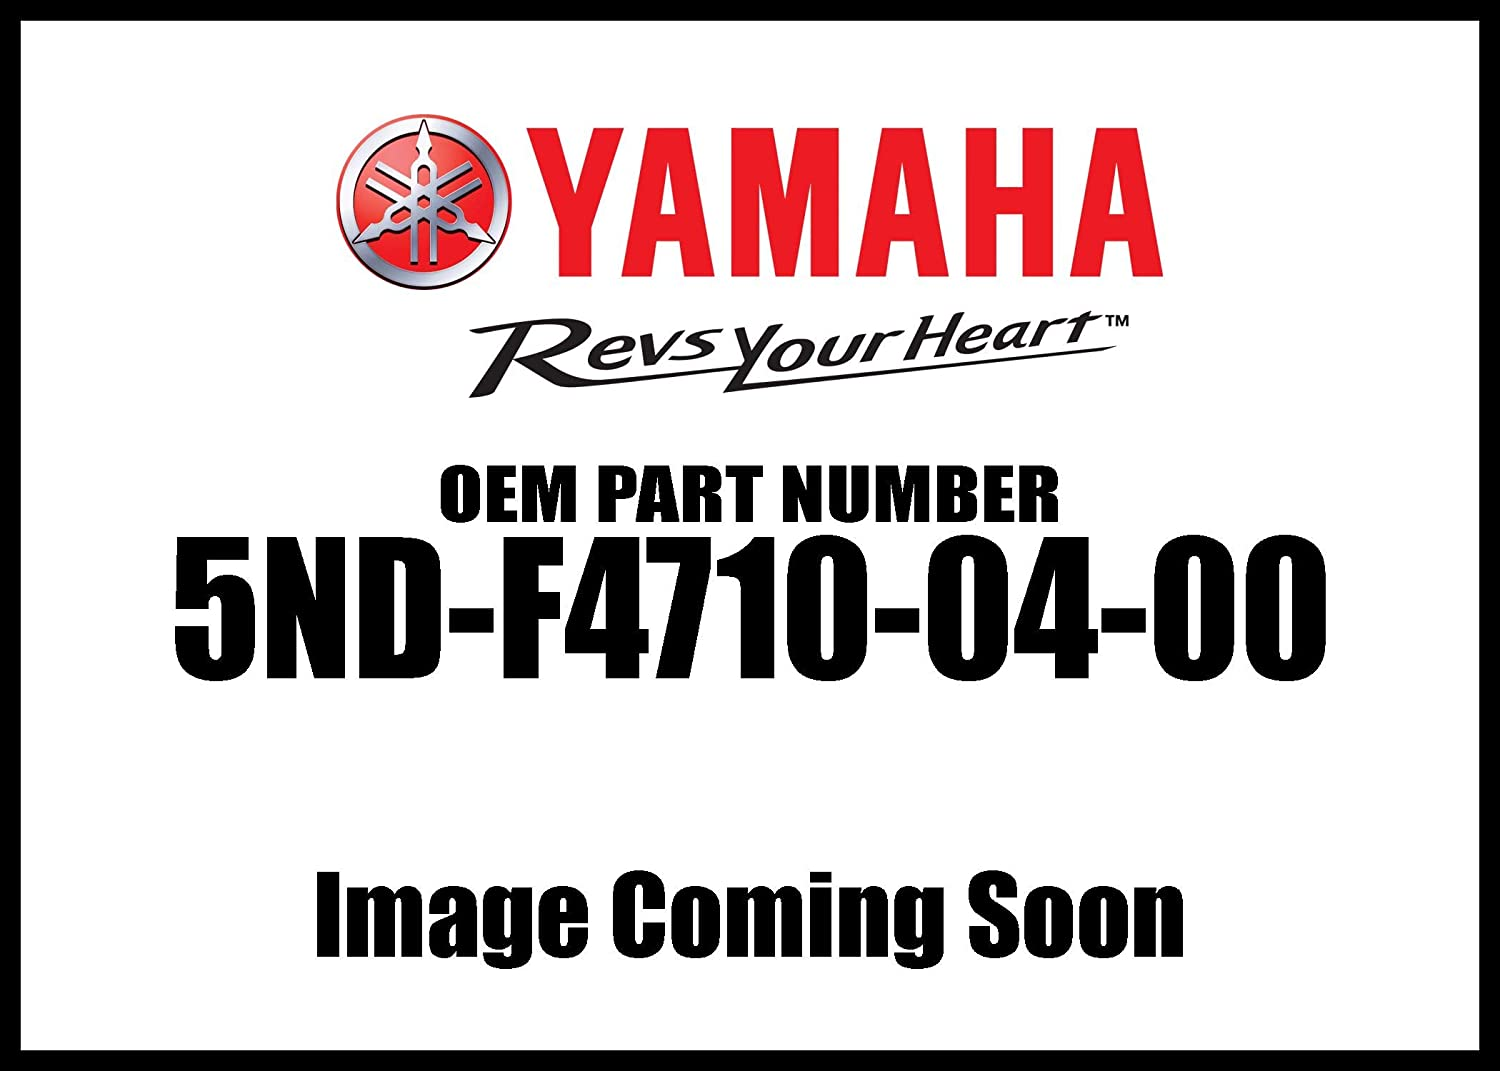 YAMAHA COMPLETE SEAT ASSY 12-14 YFM350TE 2WD GRIZZLY YFM350F 4WD 5ND-F4710-04-00